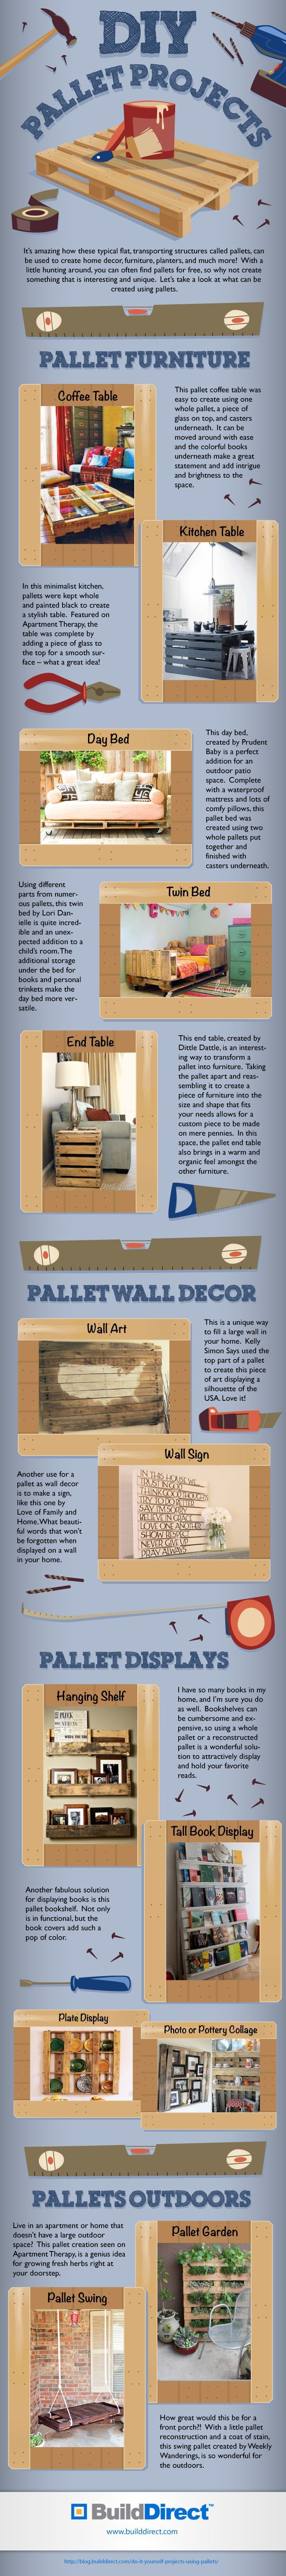 Great ideas to turn your regular pallet into a creative and beautiful piece of furniture or decor!